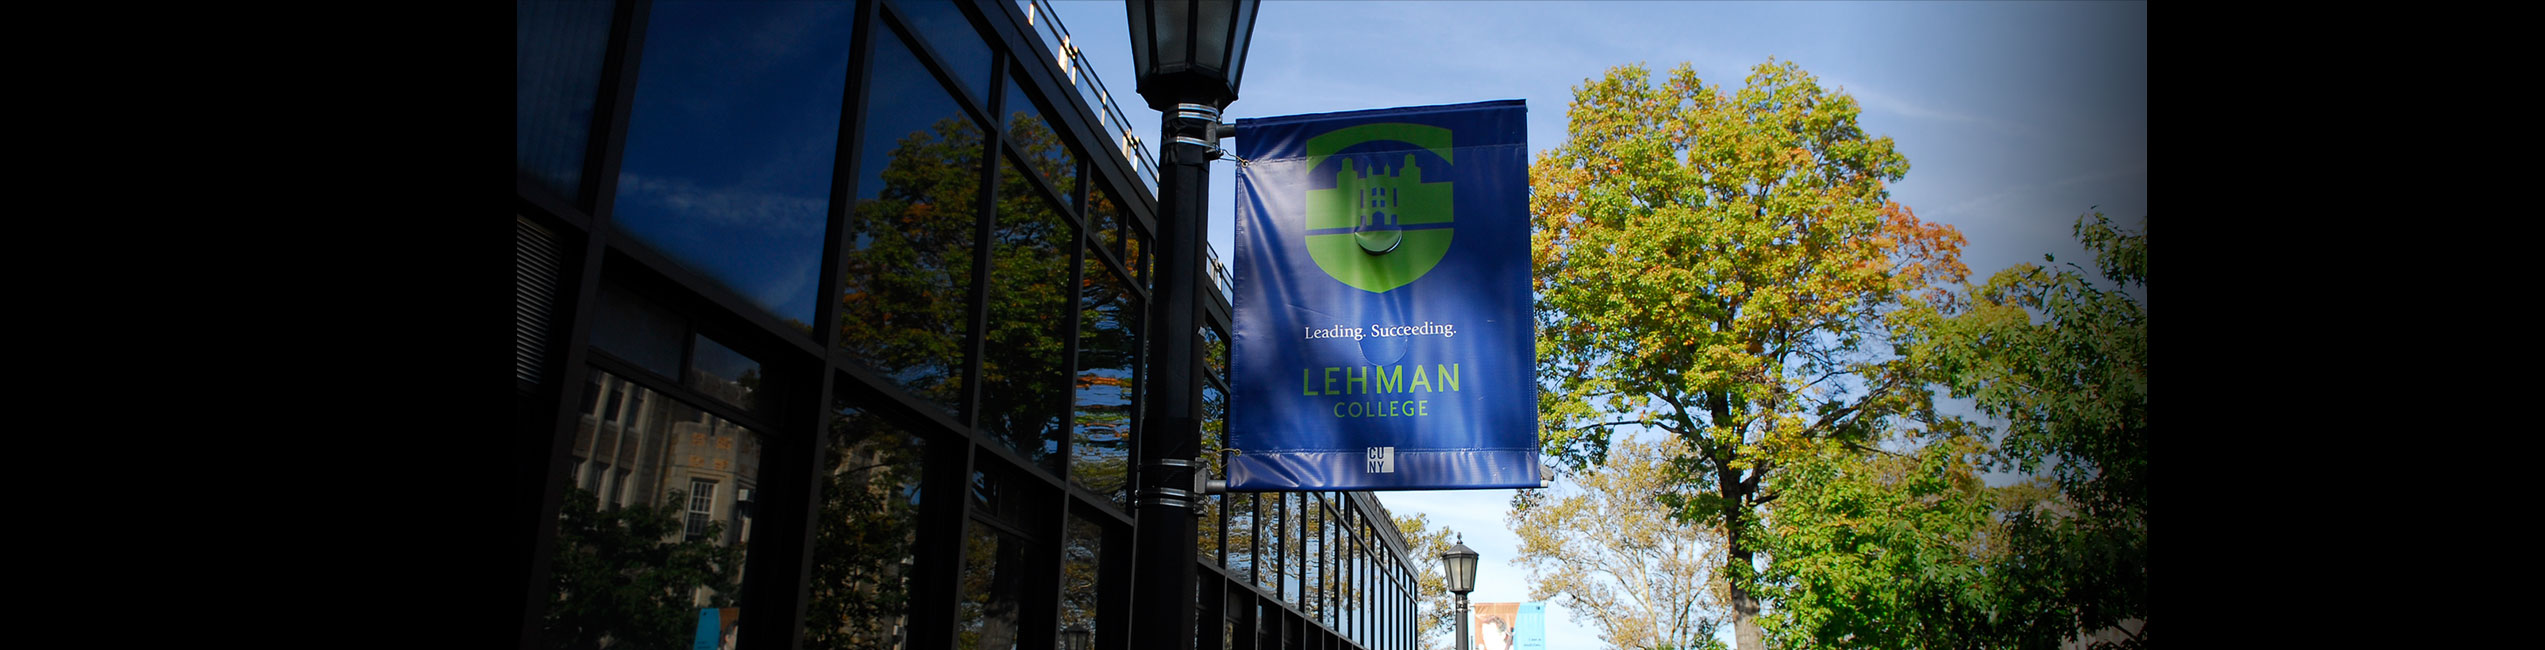 About Lehman College